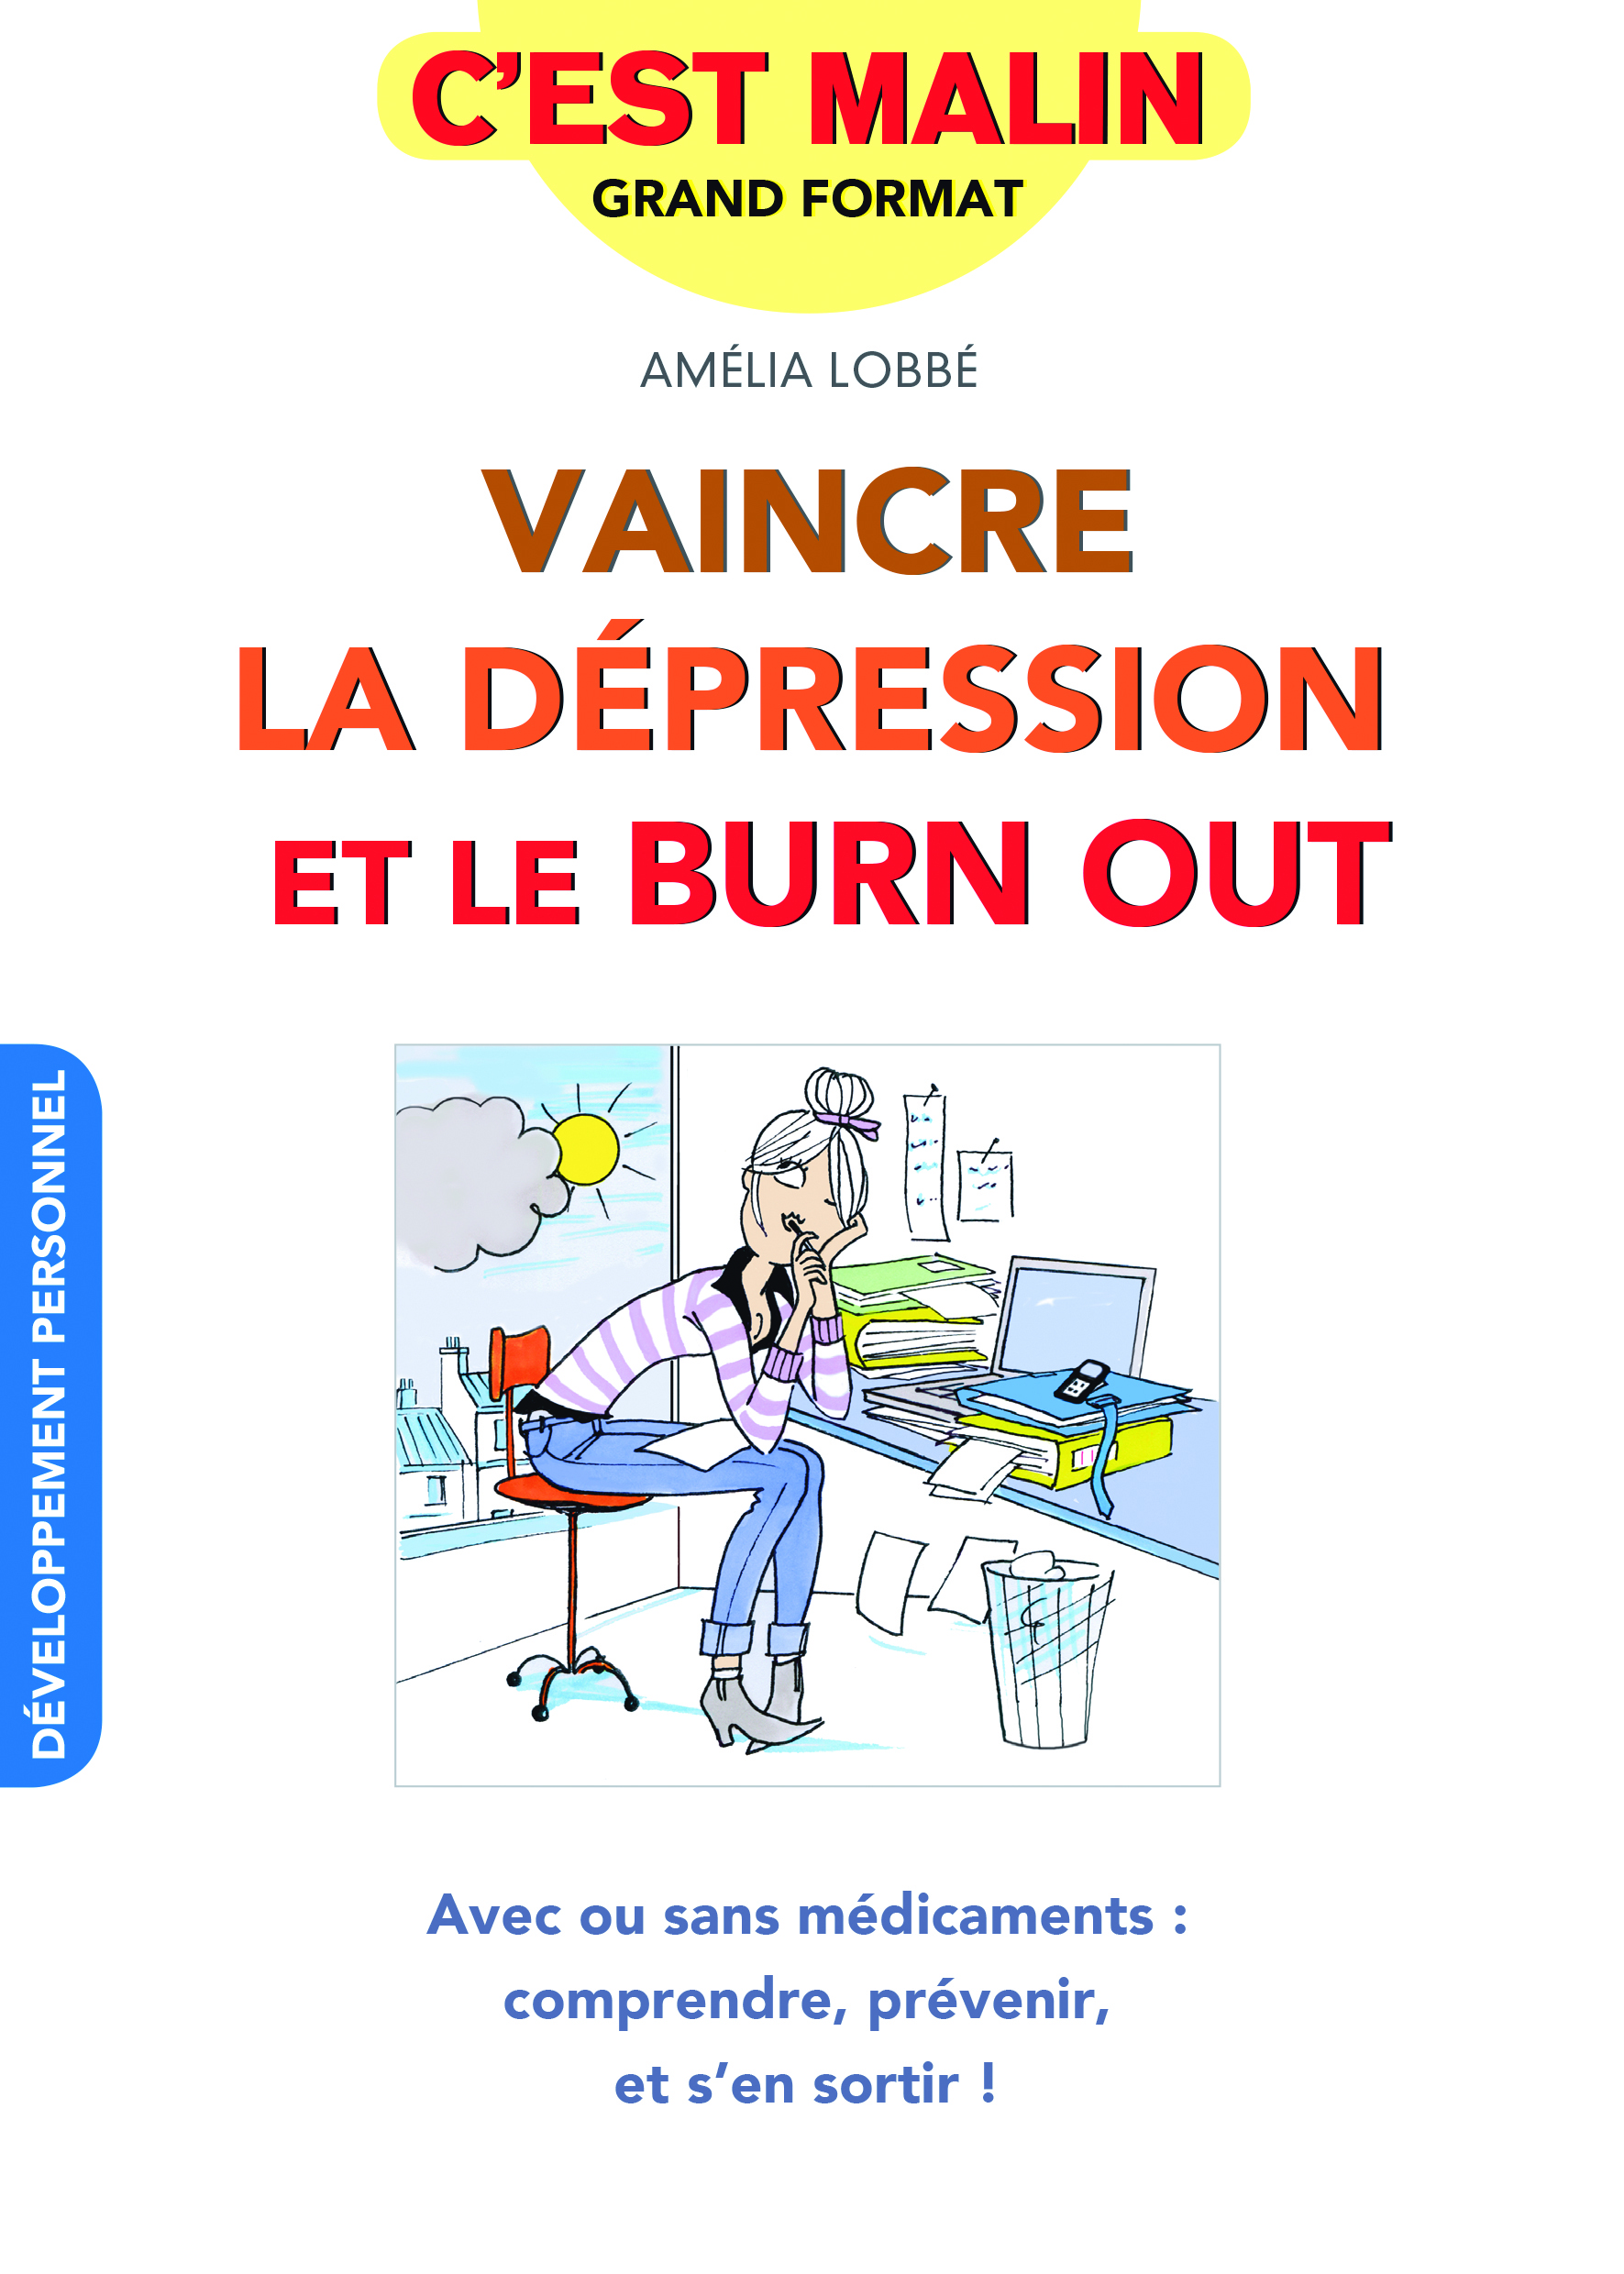 VAINCRE LA DEPRESSION ET LE BURN-OUT, C'EST MALIN